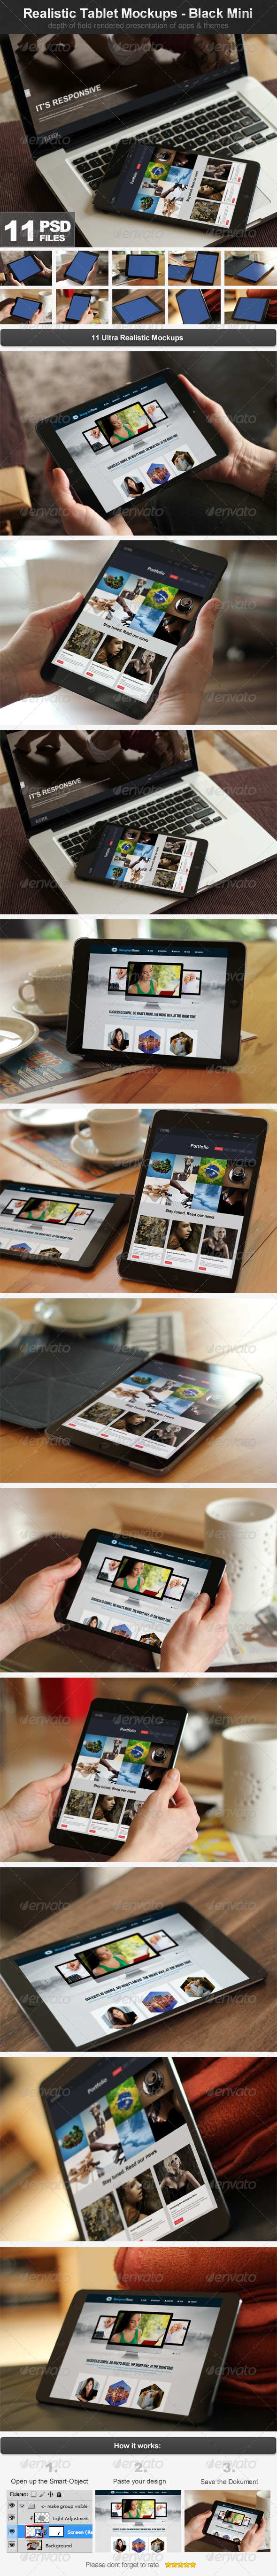 GraphicRiver Realistic Tablet Mockups Black Mini 4792943